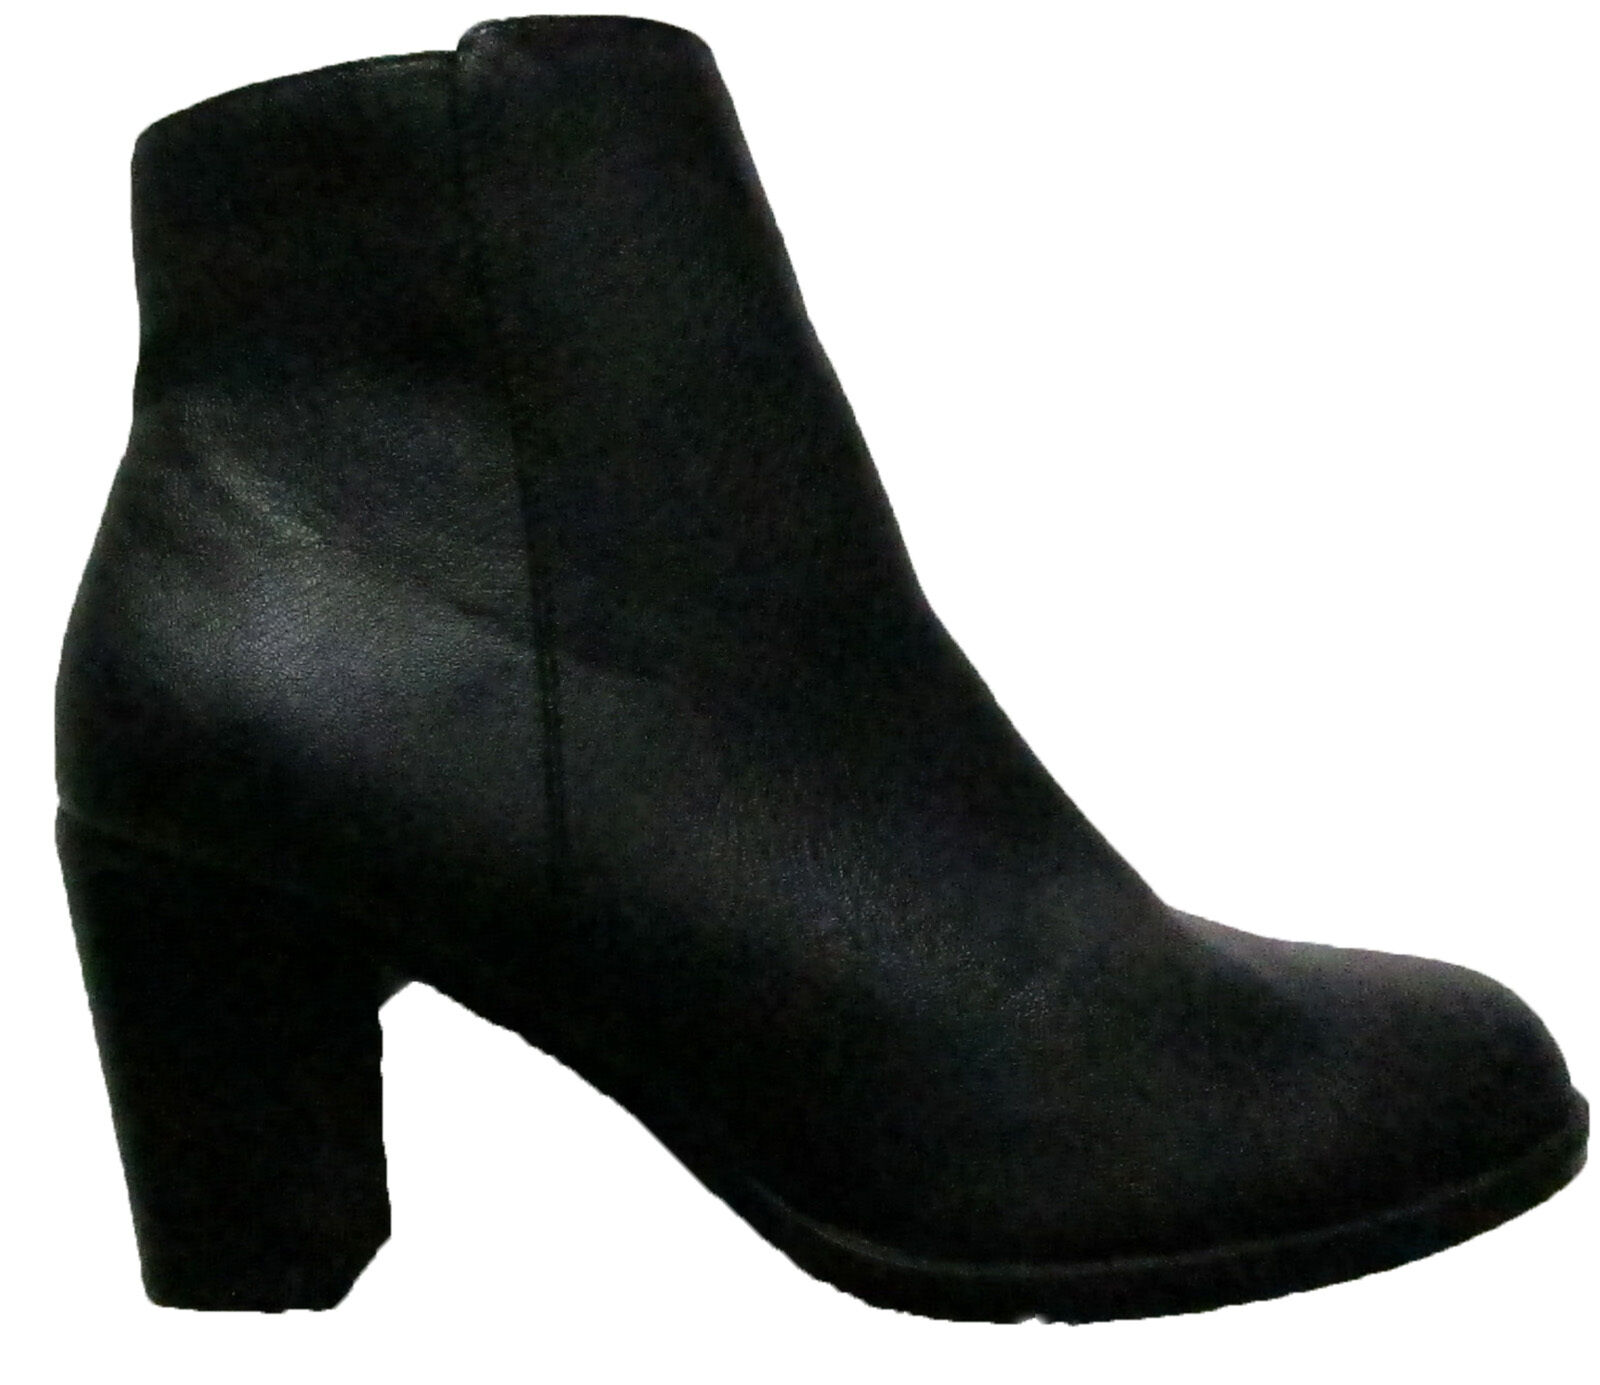 New Womens Black NEXT Boots Size 8